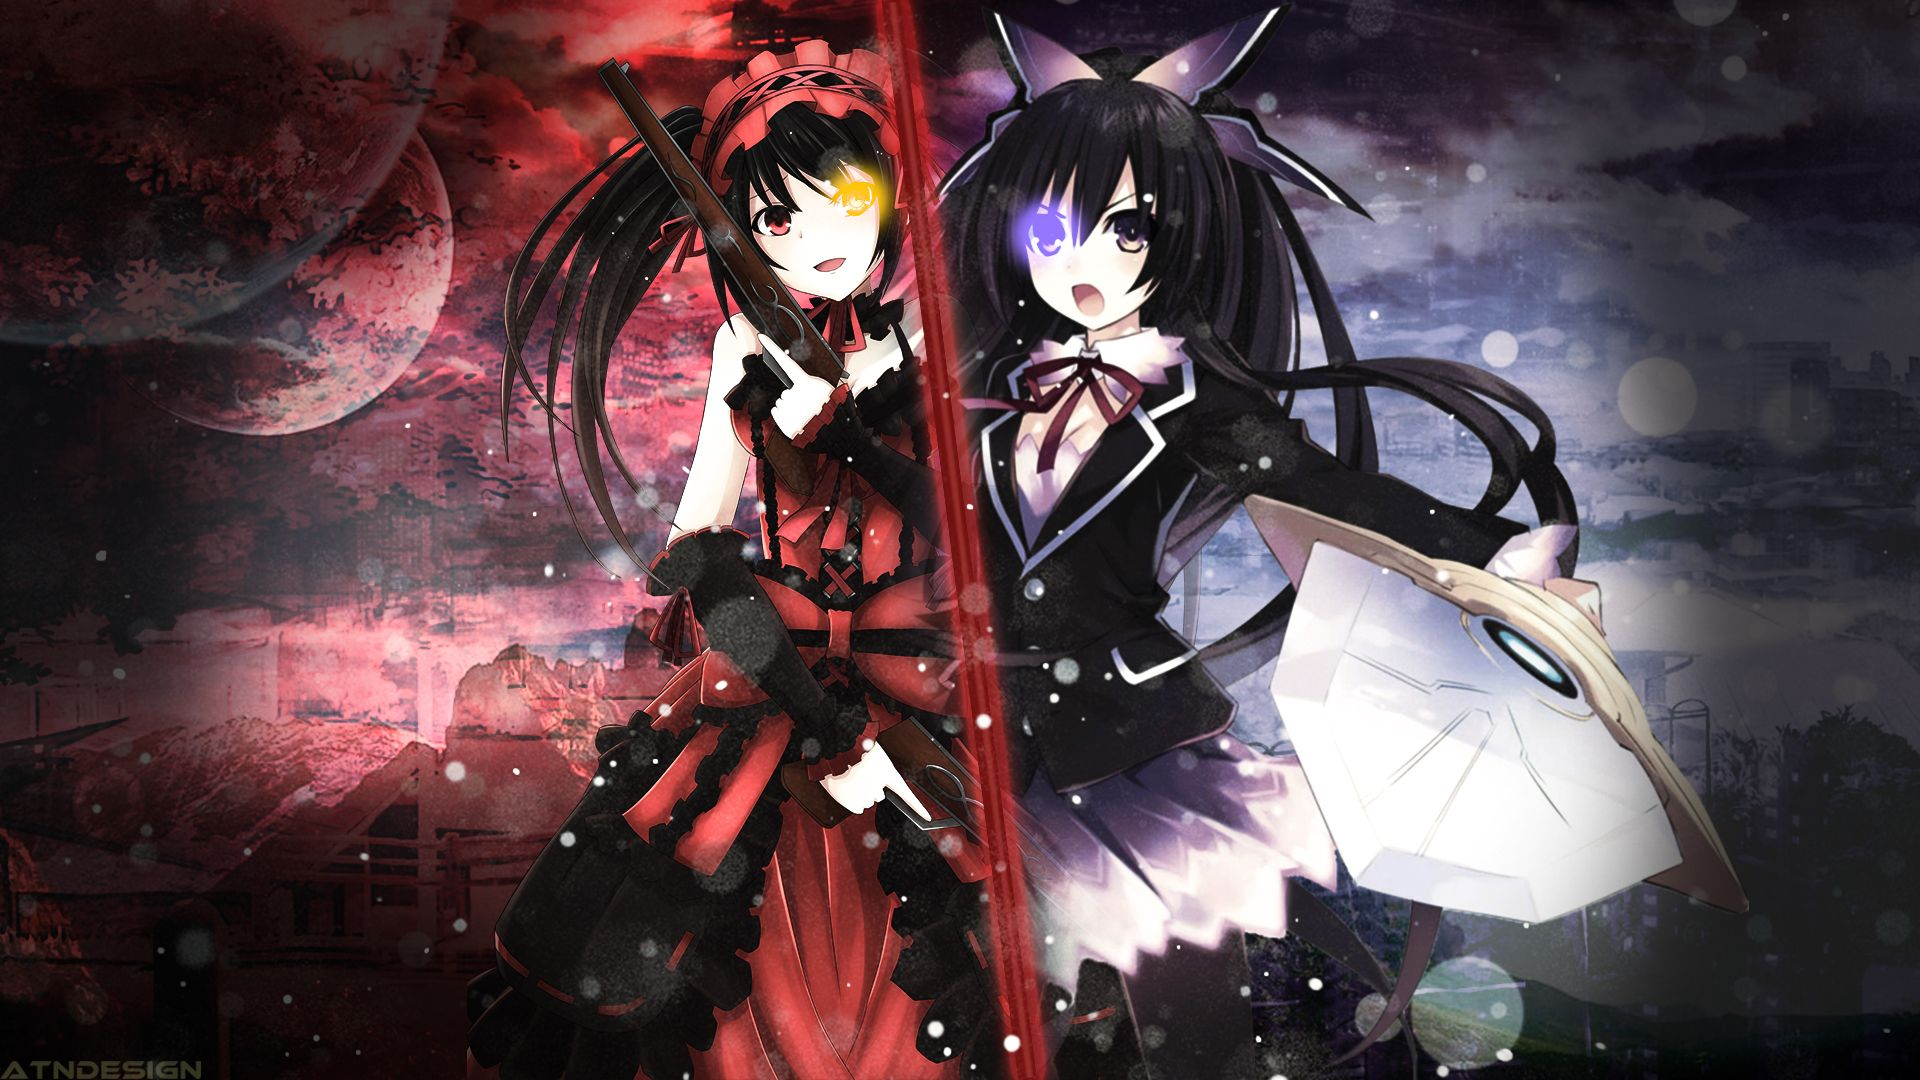 Date A Live 2 Wallpaper Anime Zhizn